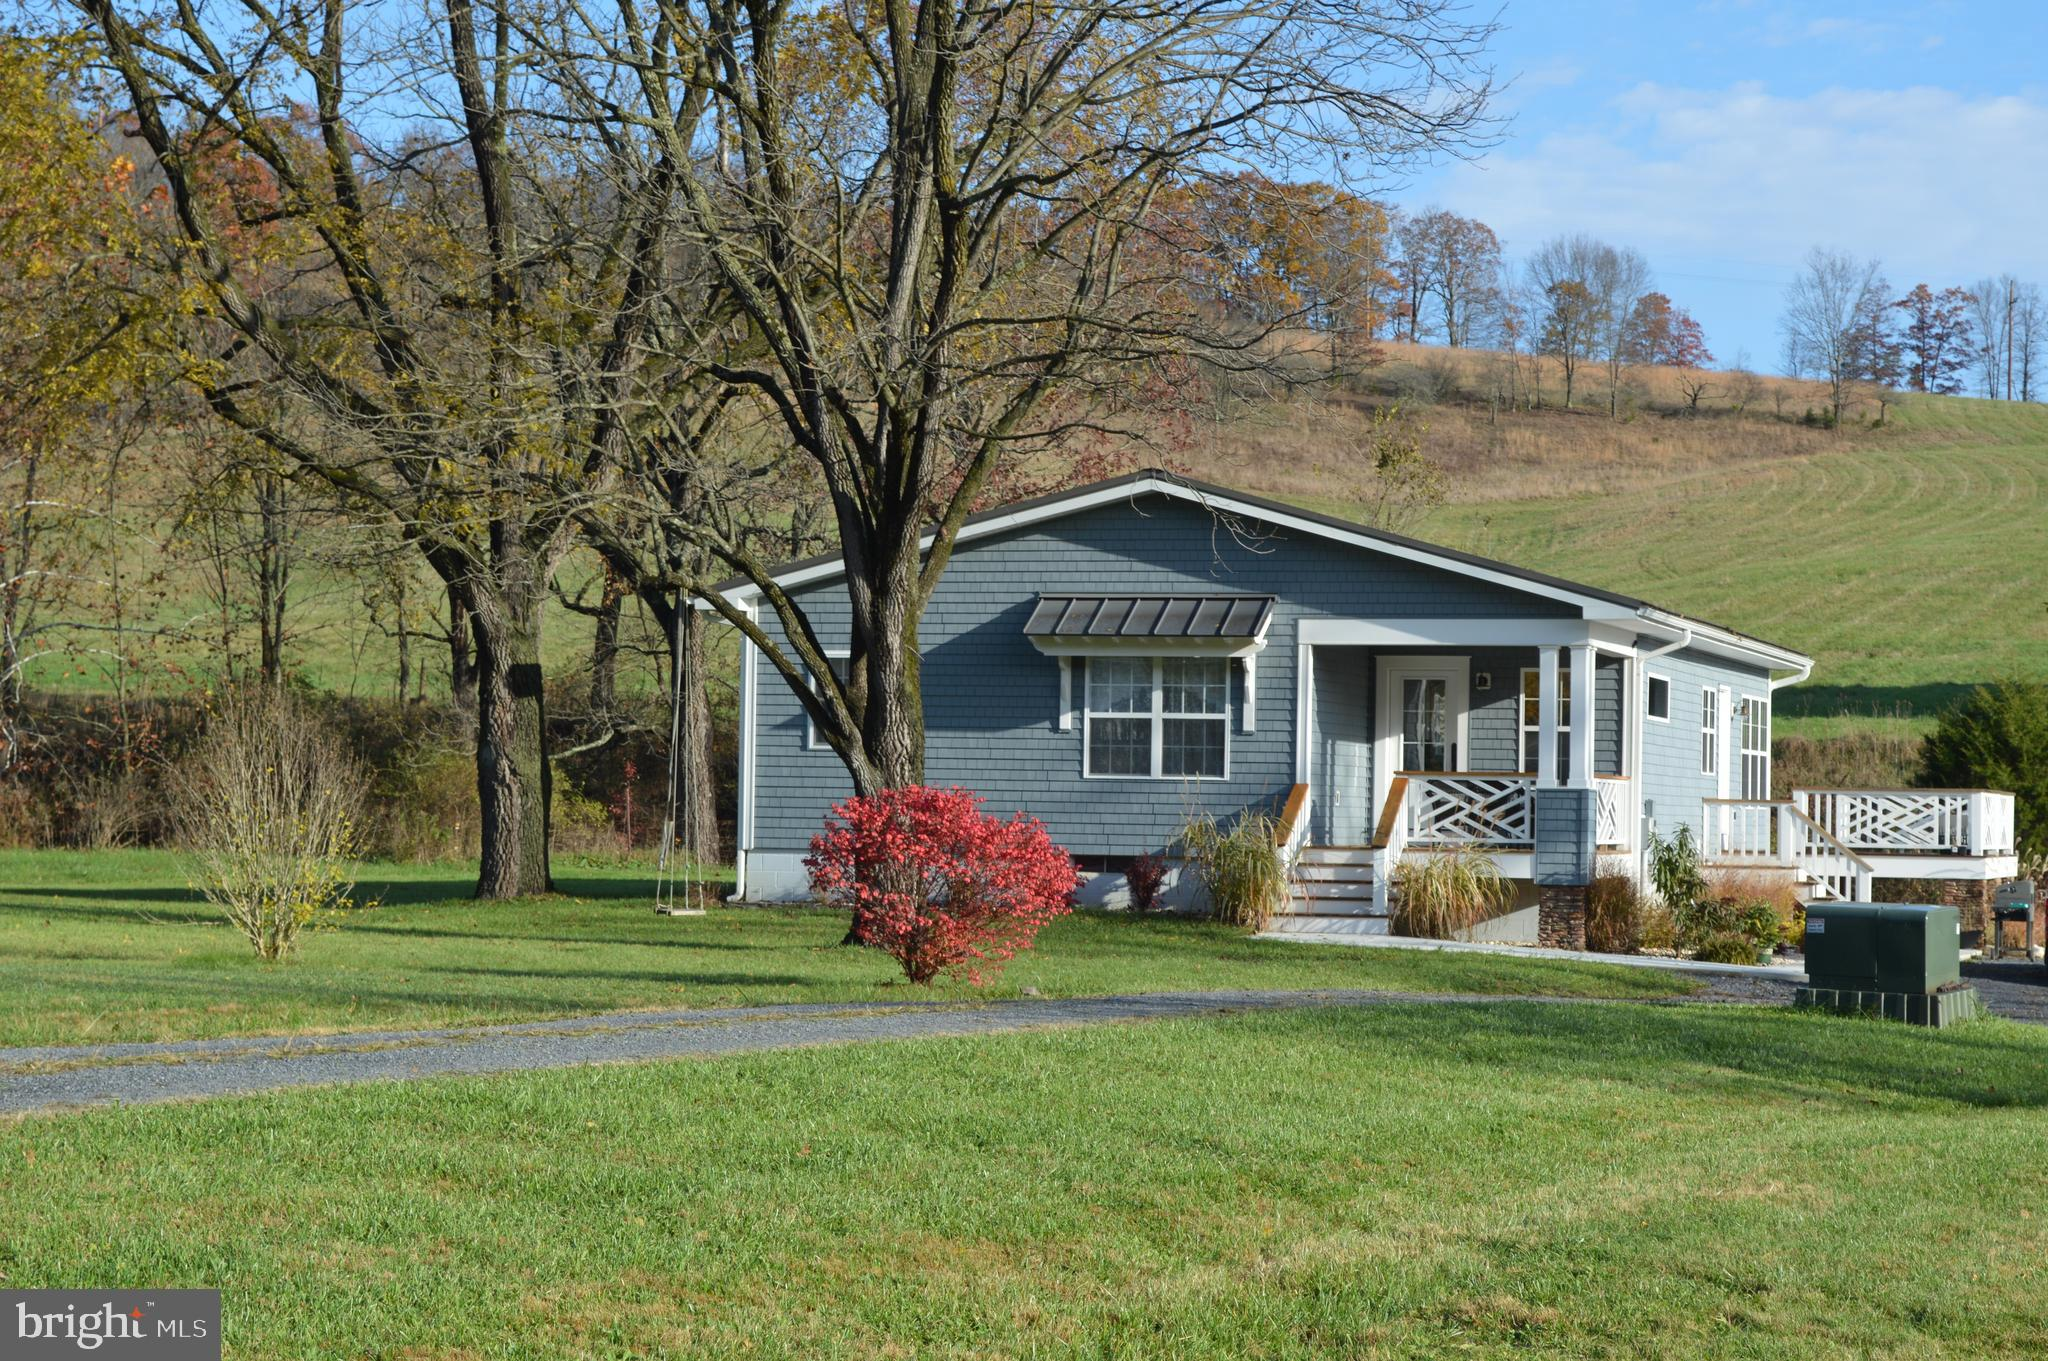 8783 FRANKFORT HIGHWAY, FORT ASHBY, WV 26719